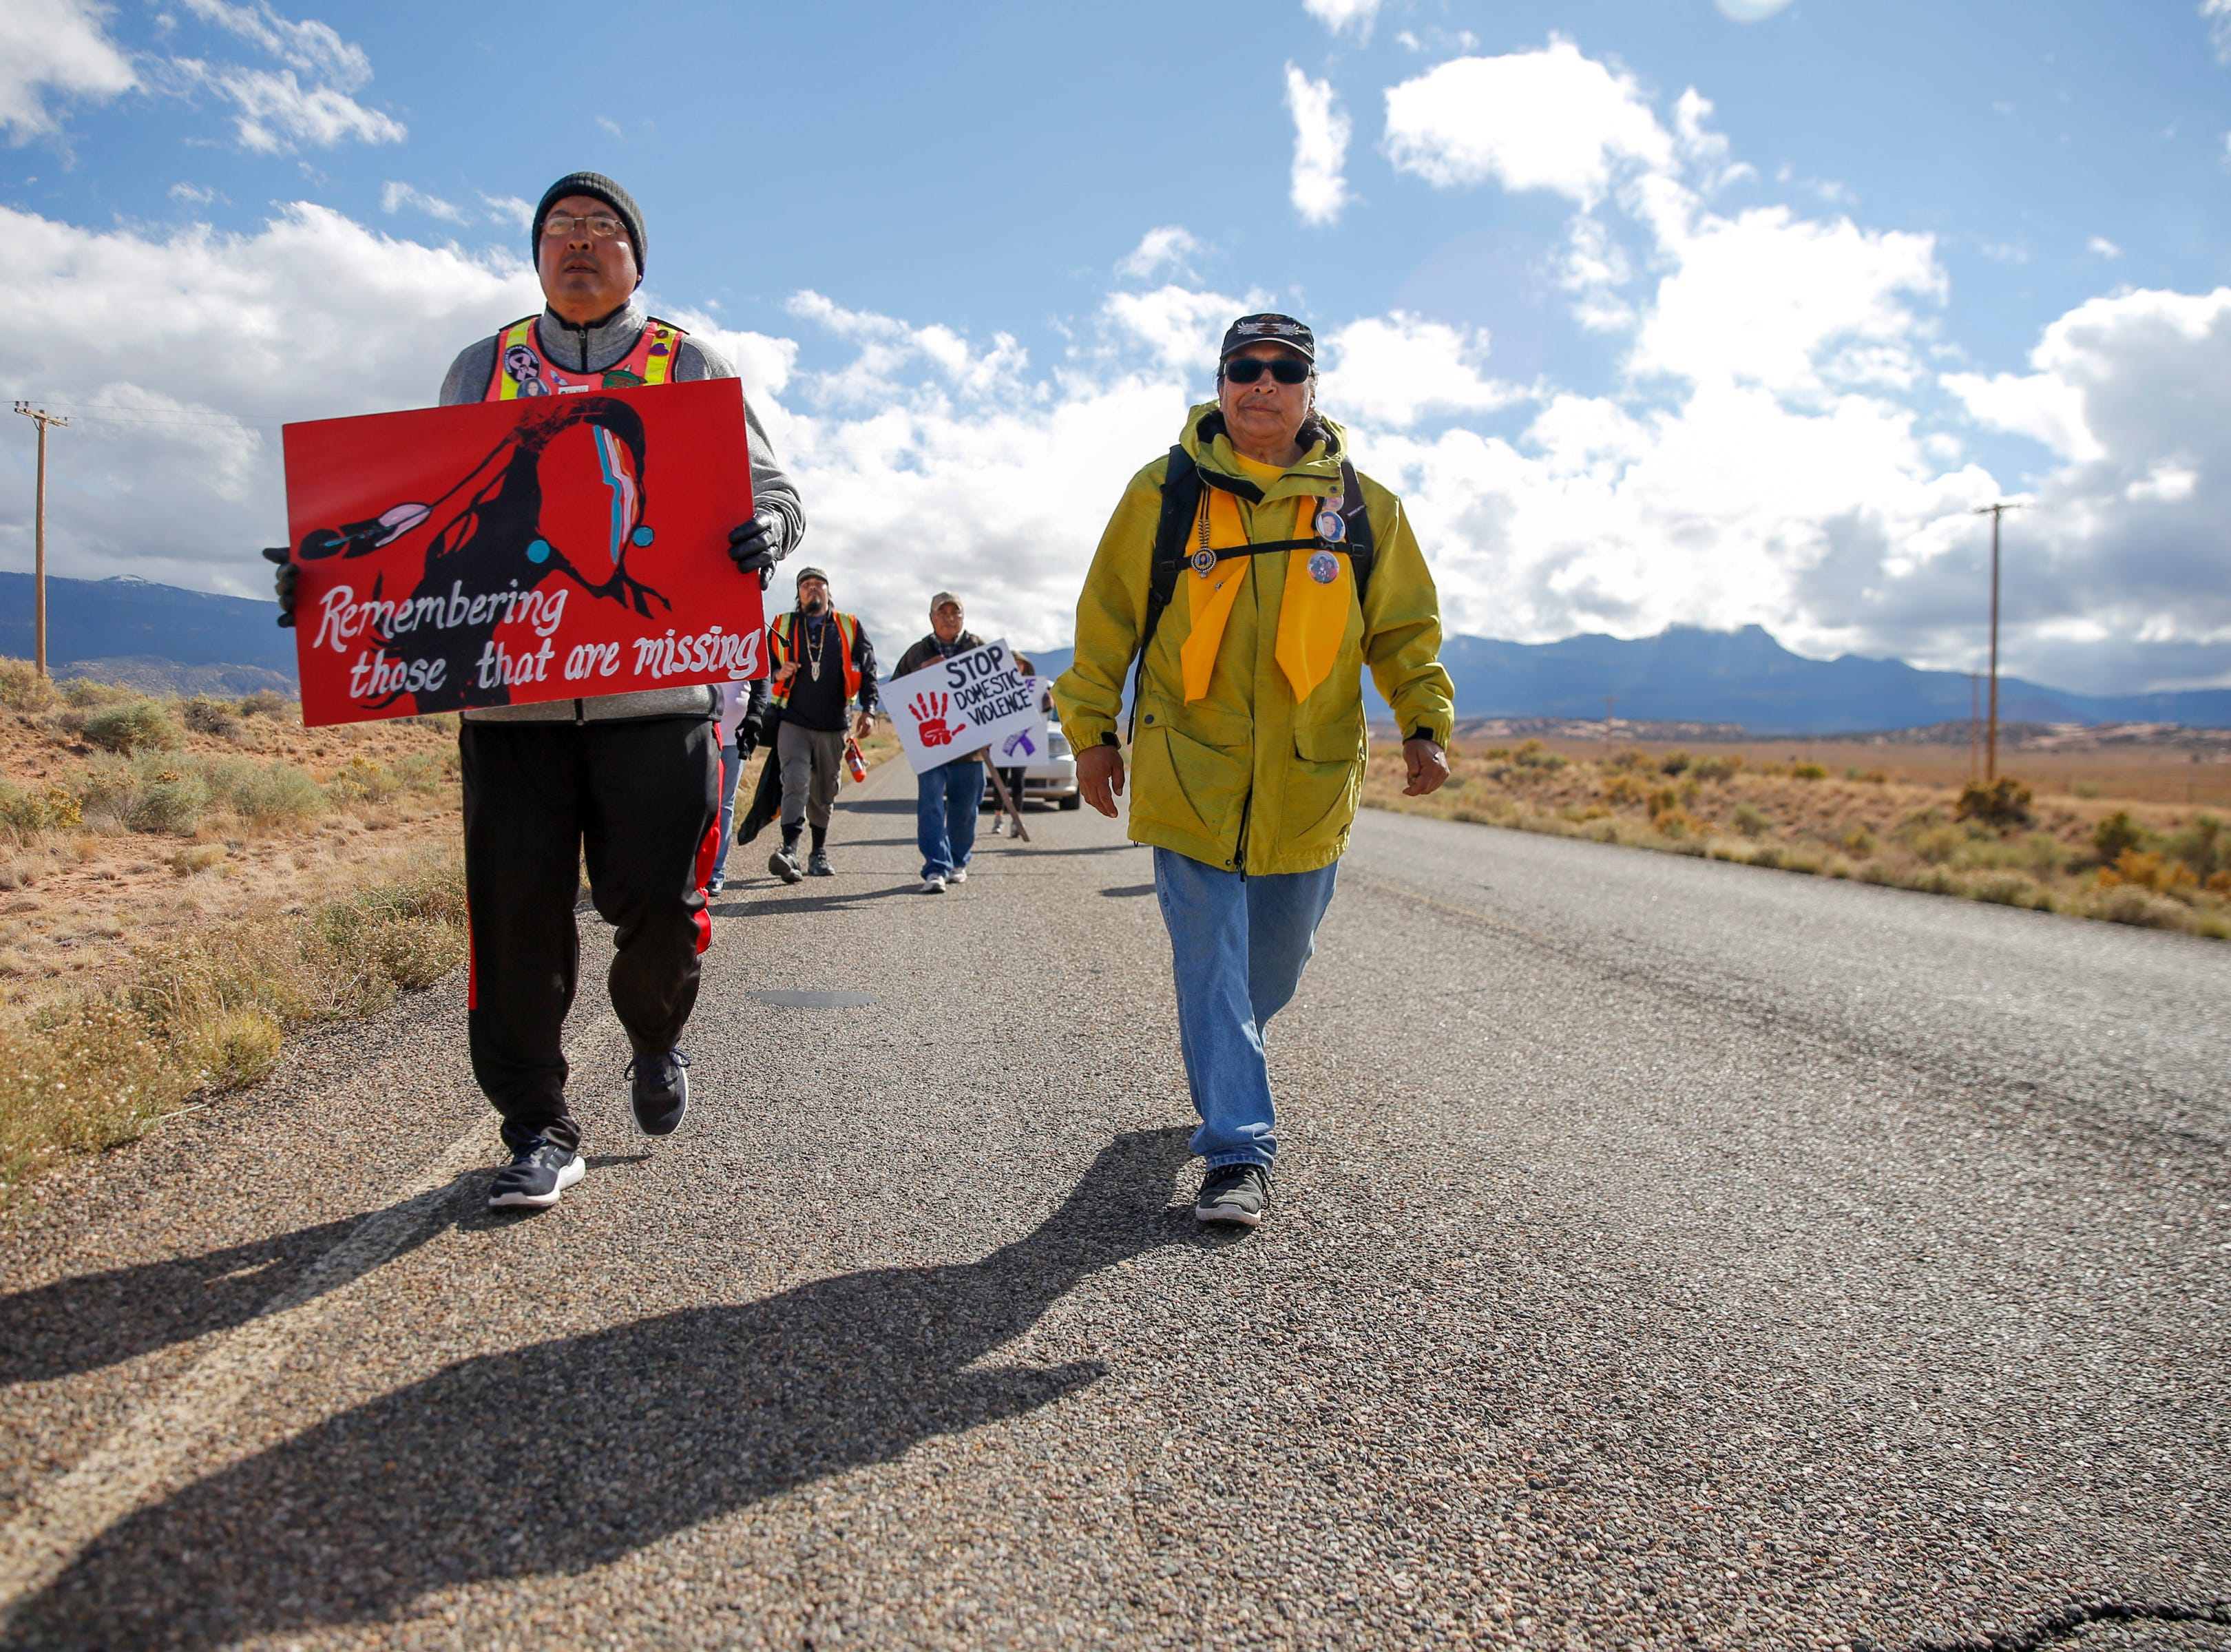 John Tsosie, co-founder of Walking the Healing Path, left, and Gary Mike, father of Ashlynne Mike, walk along Navajo Route 13 in Red Valley, Arizona on Thursday, Oct. 18, 2018. Community members are walking from Window Rock, Arizona to Shiprock to bring awareness about the issue of murdered and missing indigenous women. Gary Mike is walking the entire route and has been talking about children safety during presentations by the group.